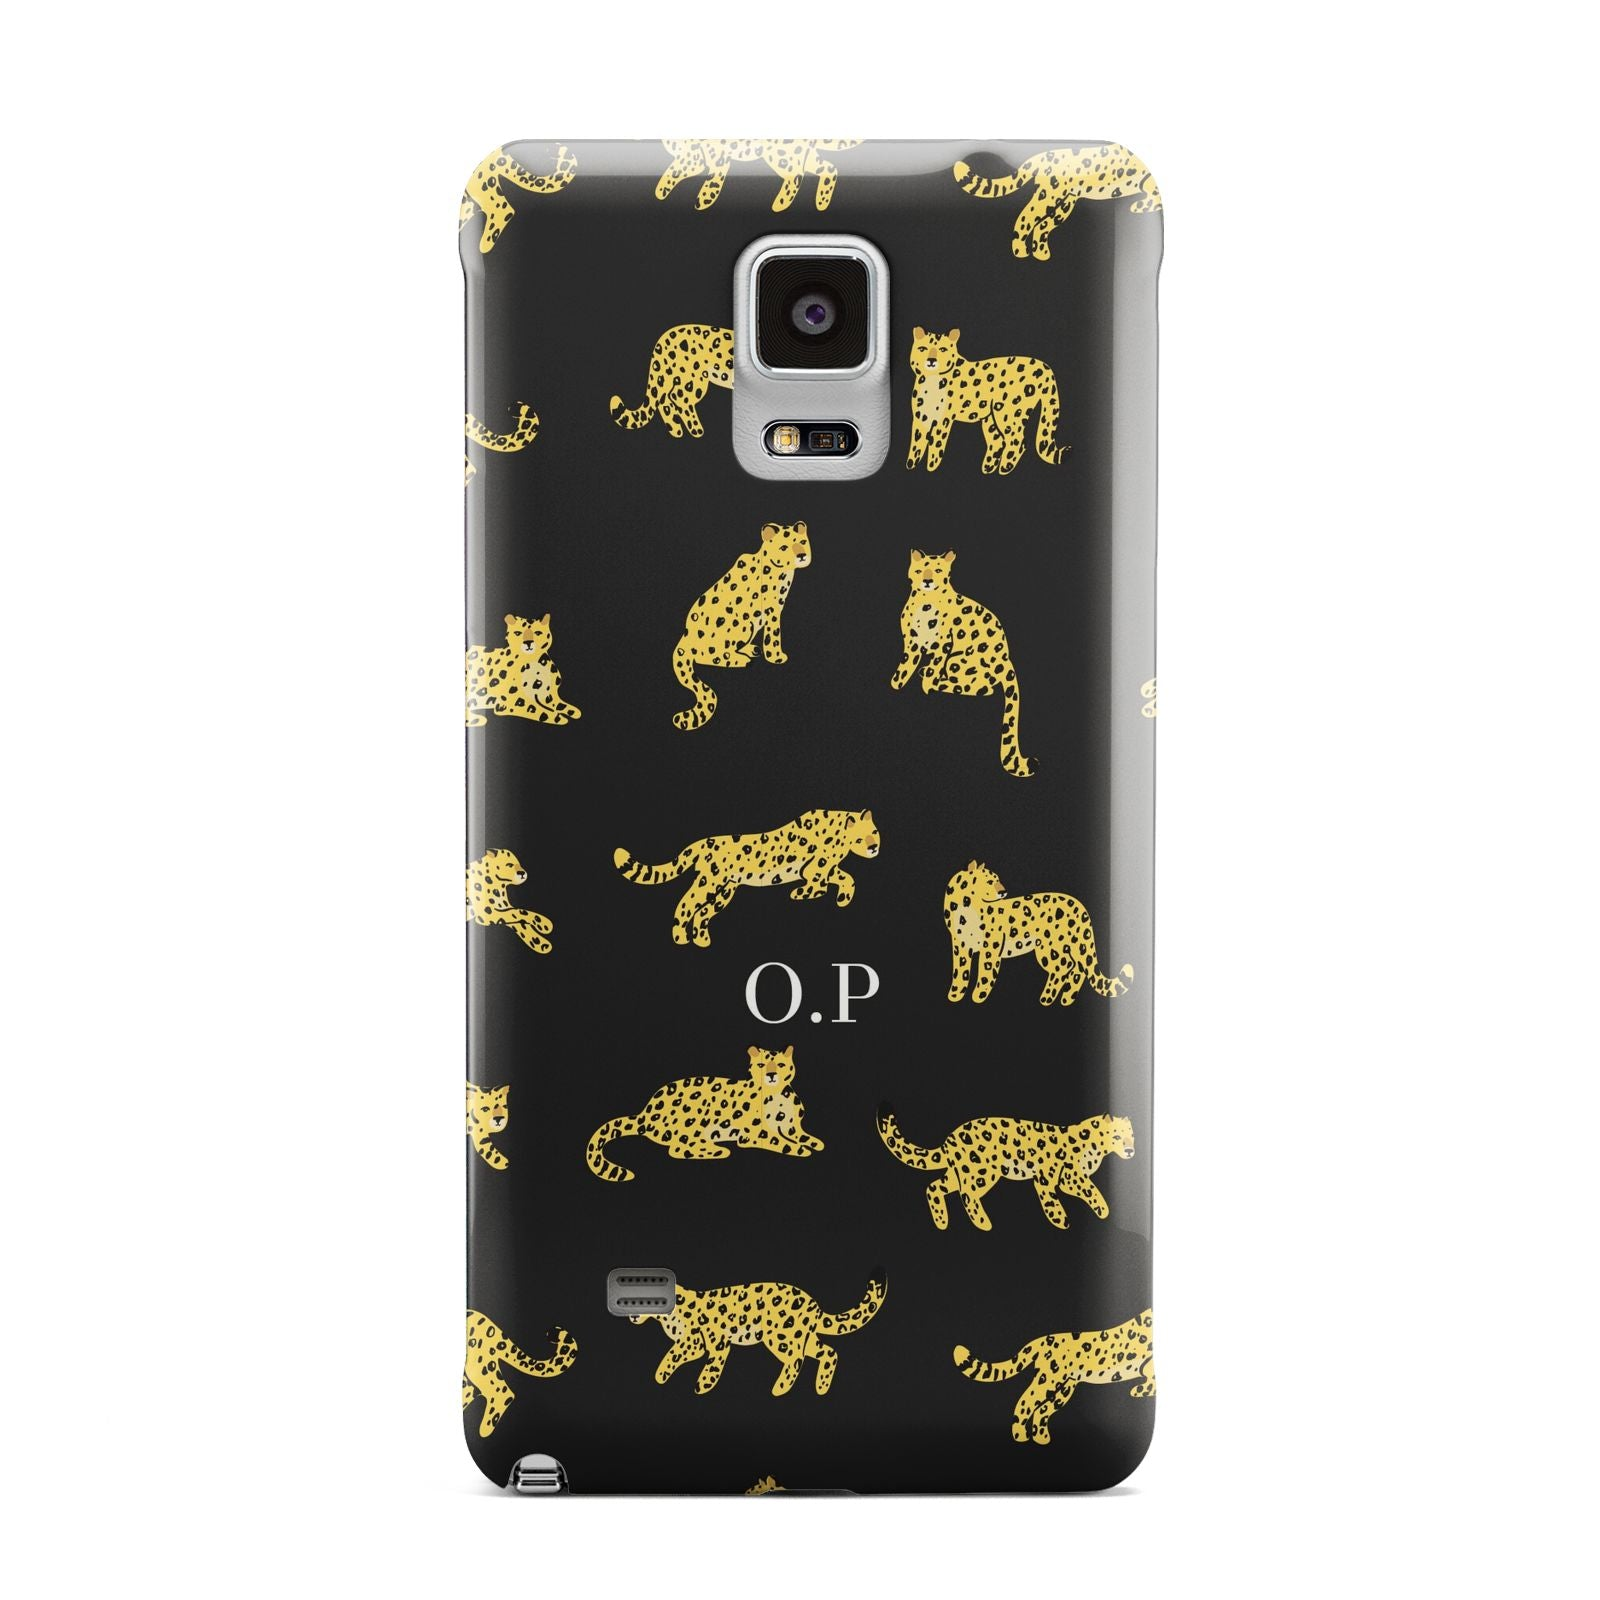 Prowling Leopard Samsung Galaxy Note 4 Case